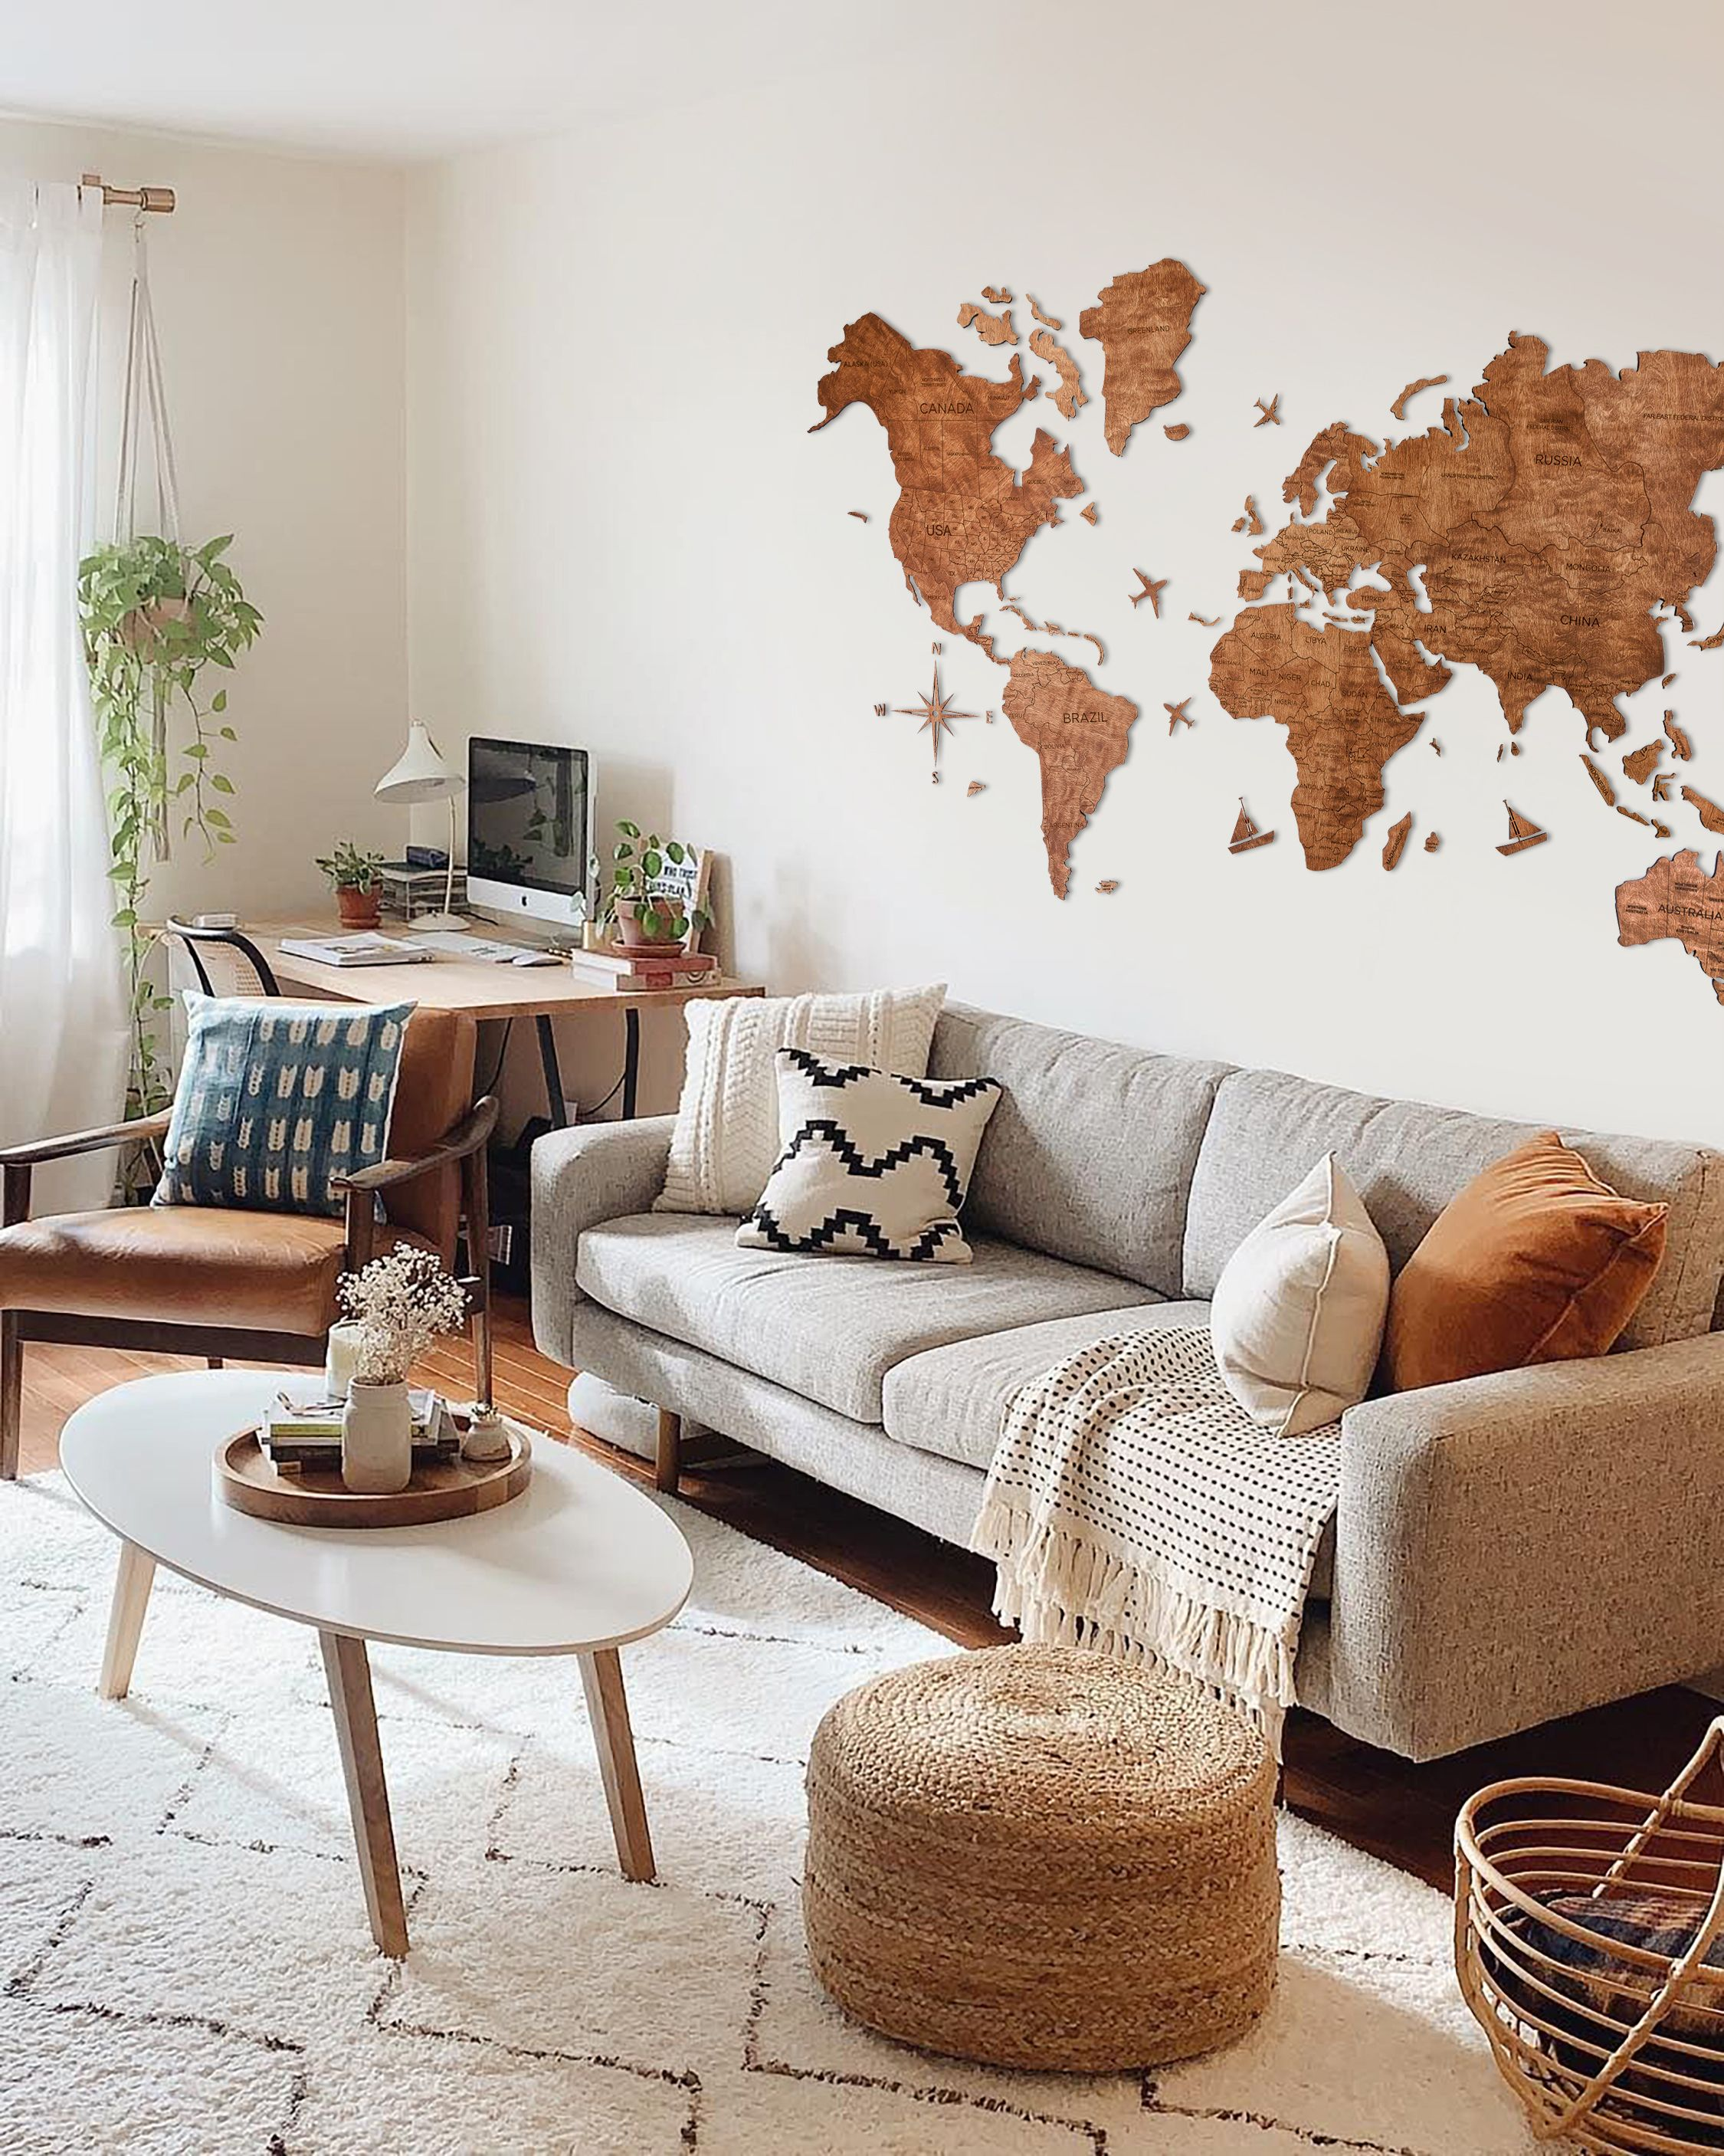 3d World Map Wall Art Home Decor Wall Decor 3d Wooden Map Enjoy The Wood Weltkarte Holz In 2020 World Map Wall Art Decor Wall Decor